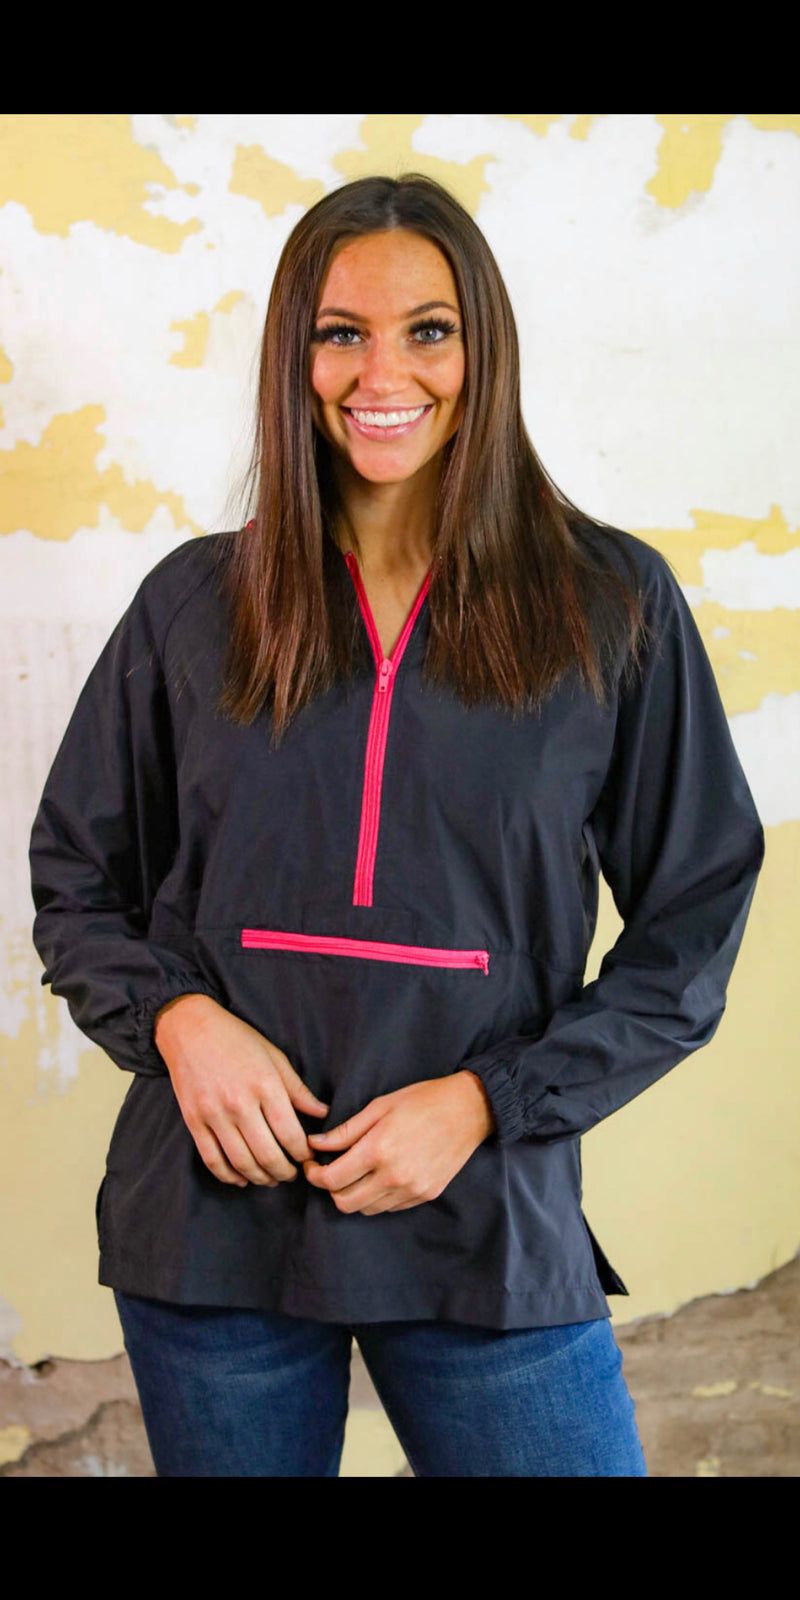 Rain or Shine Black & Pink Windbreaker - Also in Plus Size